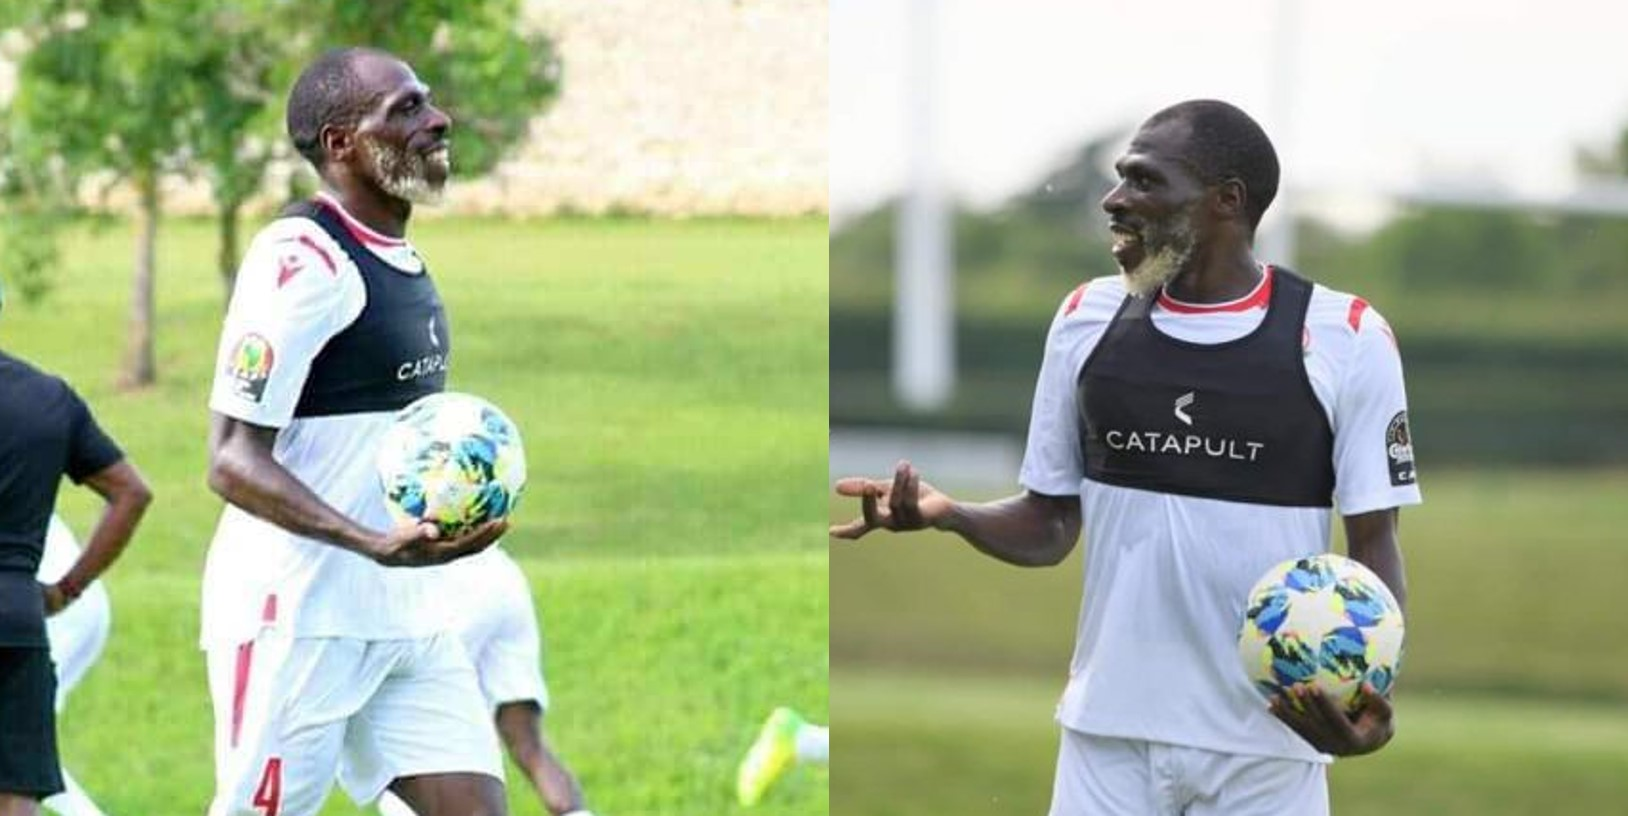 Meet 27-year-old Kenyan footballer, Joash Onyango, training with the national team ahead of 2019 AFCON